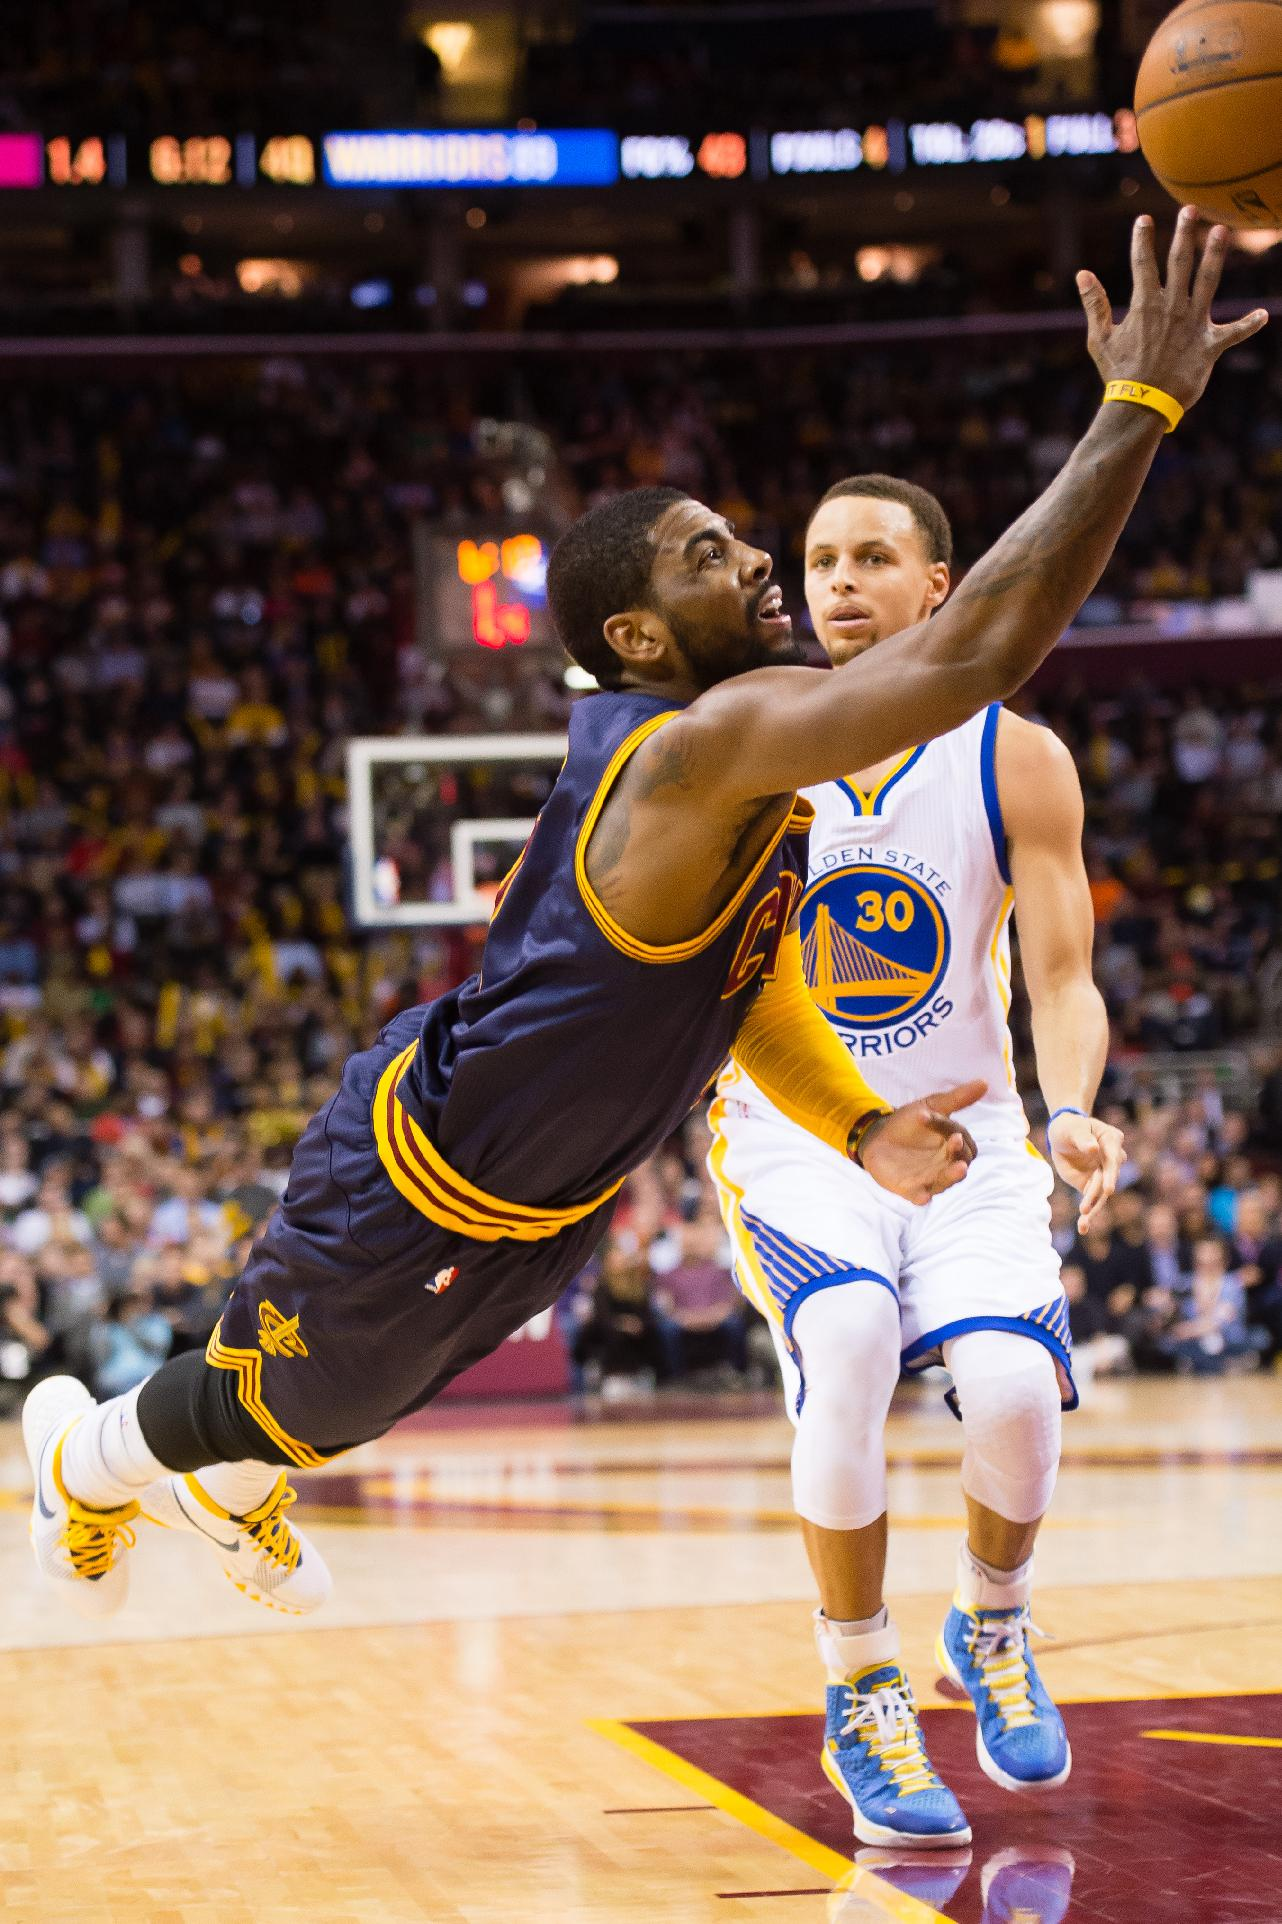 Cavs guard Irving to miss game with strained shoulder